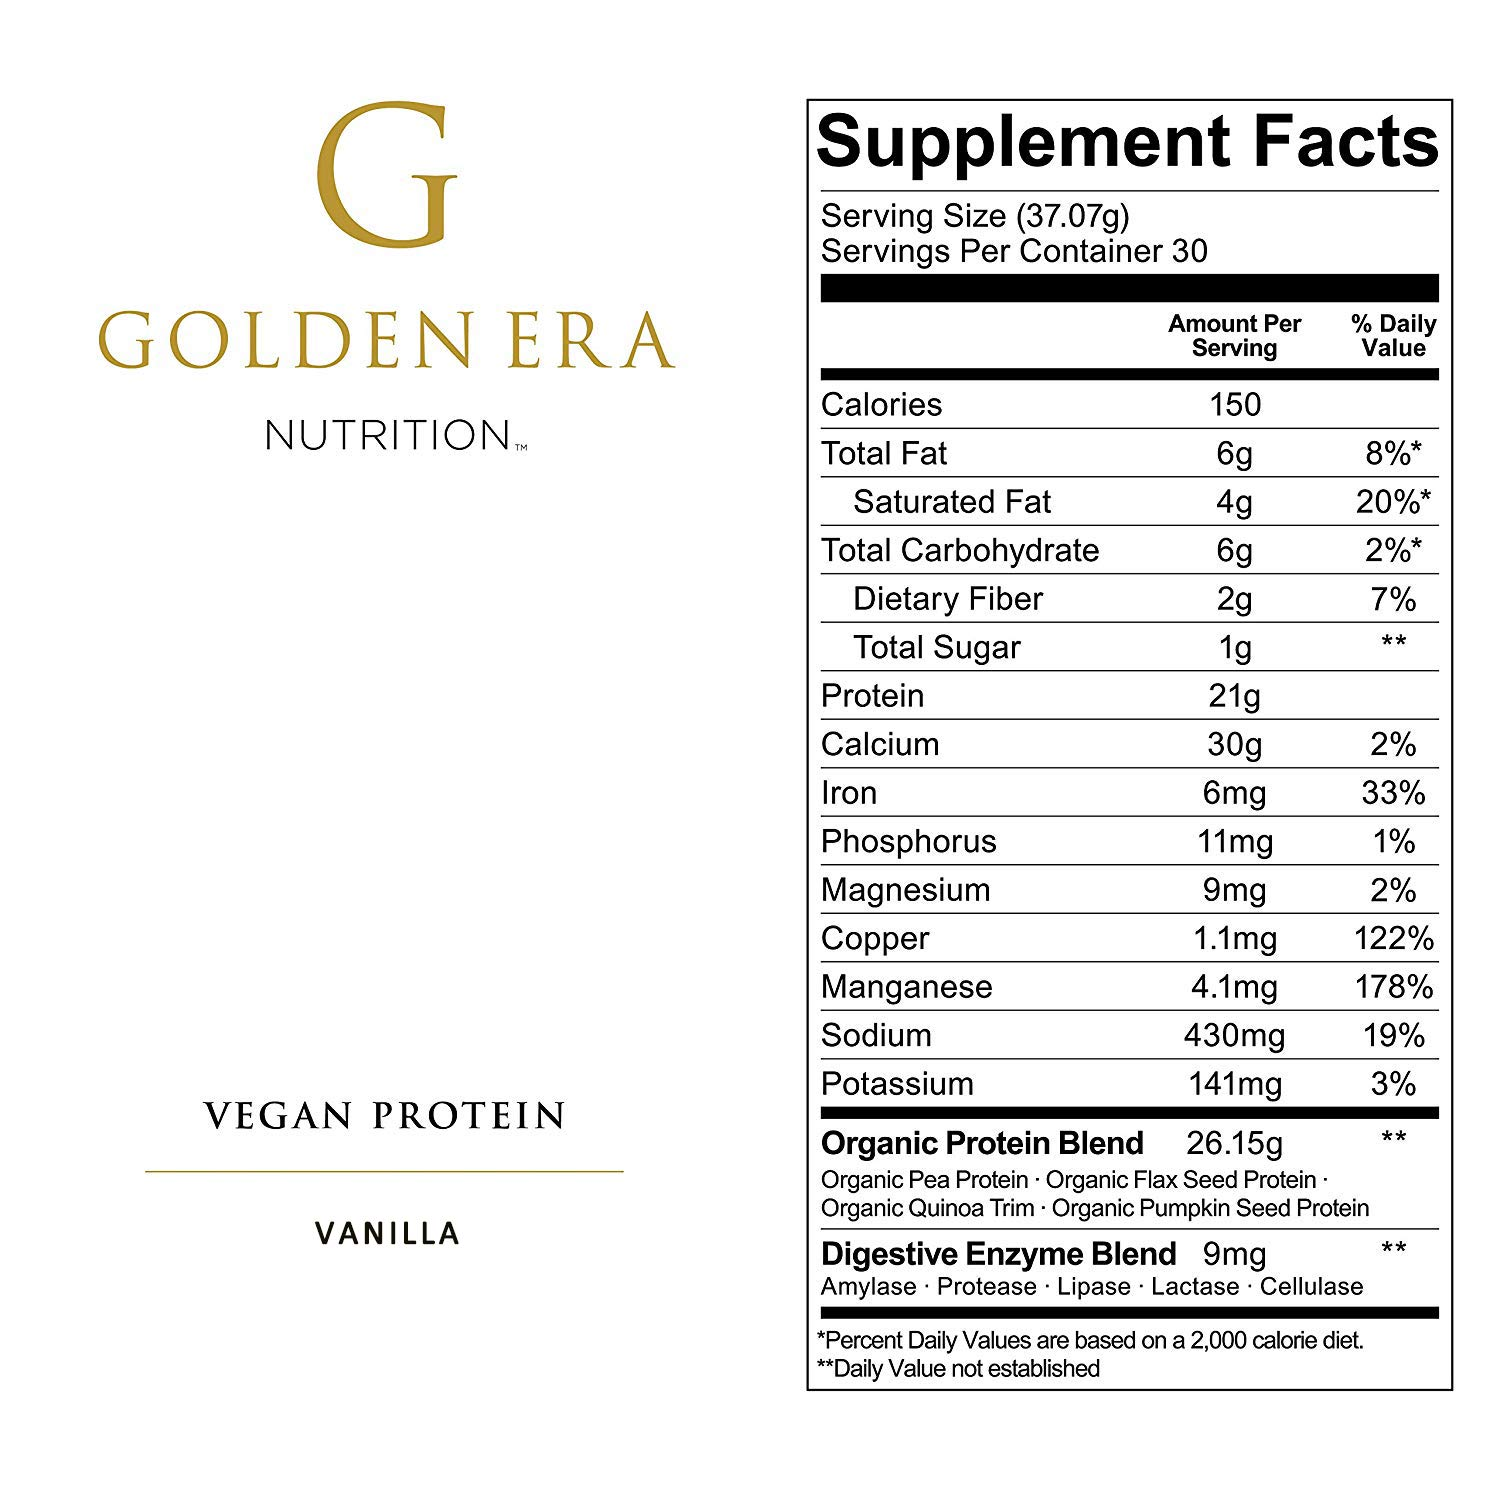 Golden Era Nutrition Organic Plant Based Vegan Protein Powder, Vanilla Flavor, Vegan, Low Net Carbs, Non Dairy, Gluten Free, Lactose Free, No Sugar Added, Soy Free, Kosher, Non-GMO, 2.45 Pounds